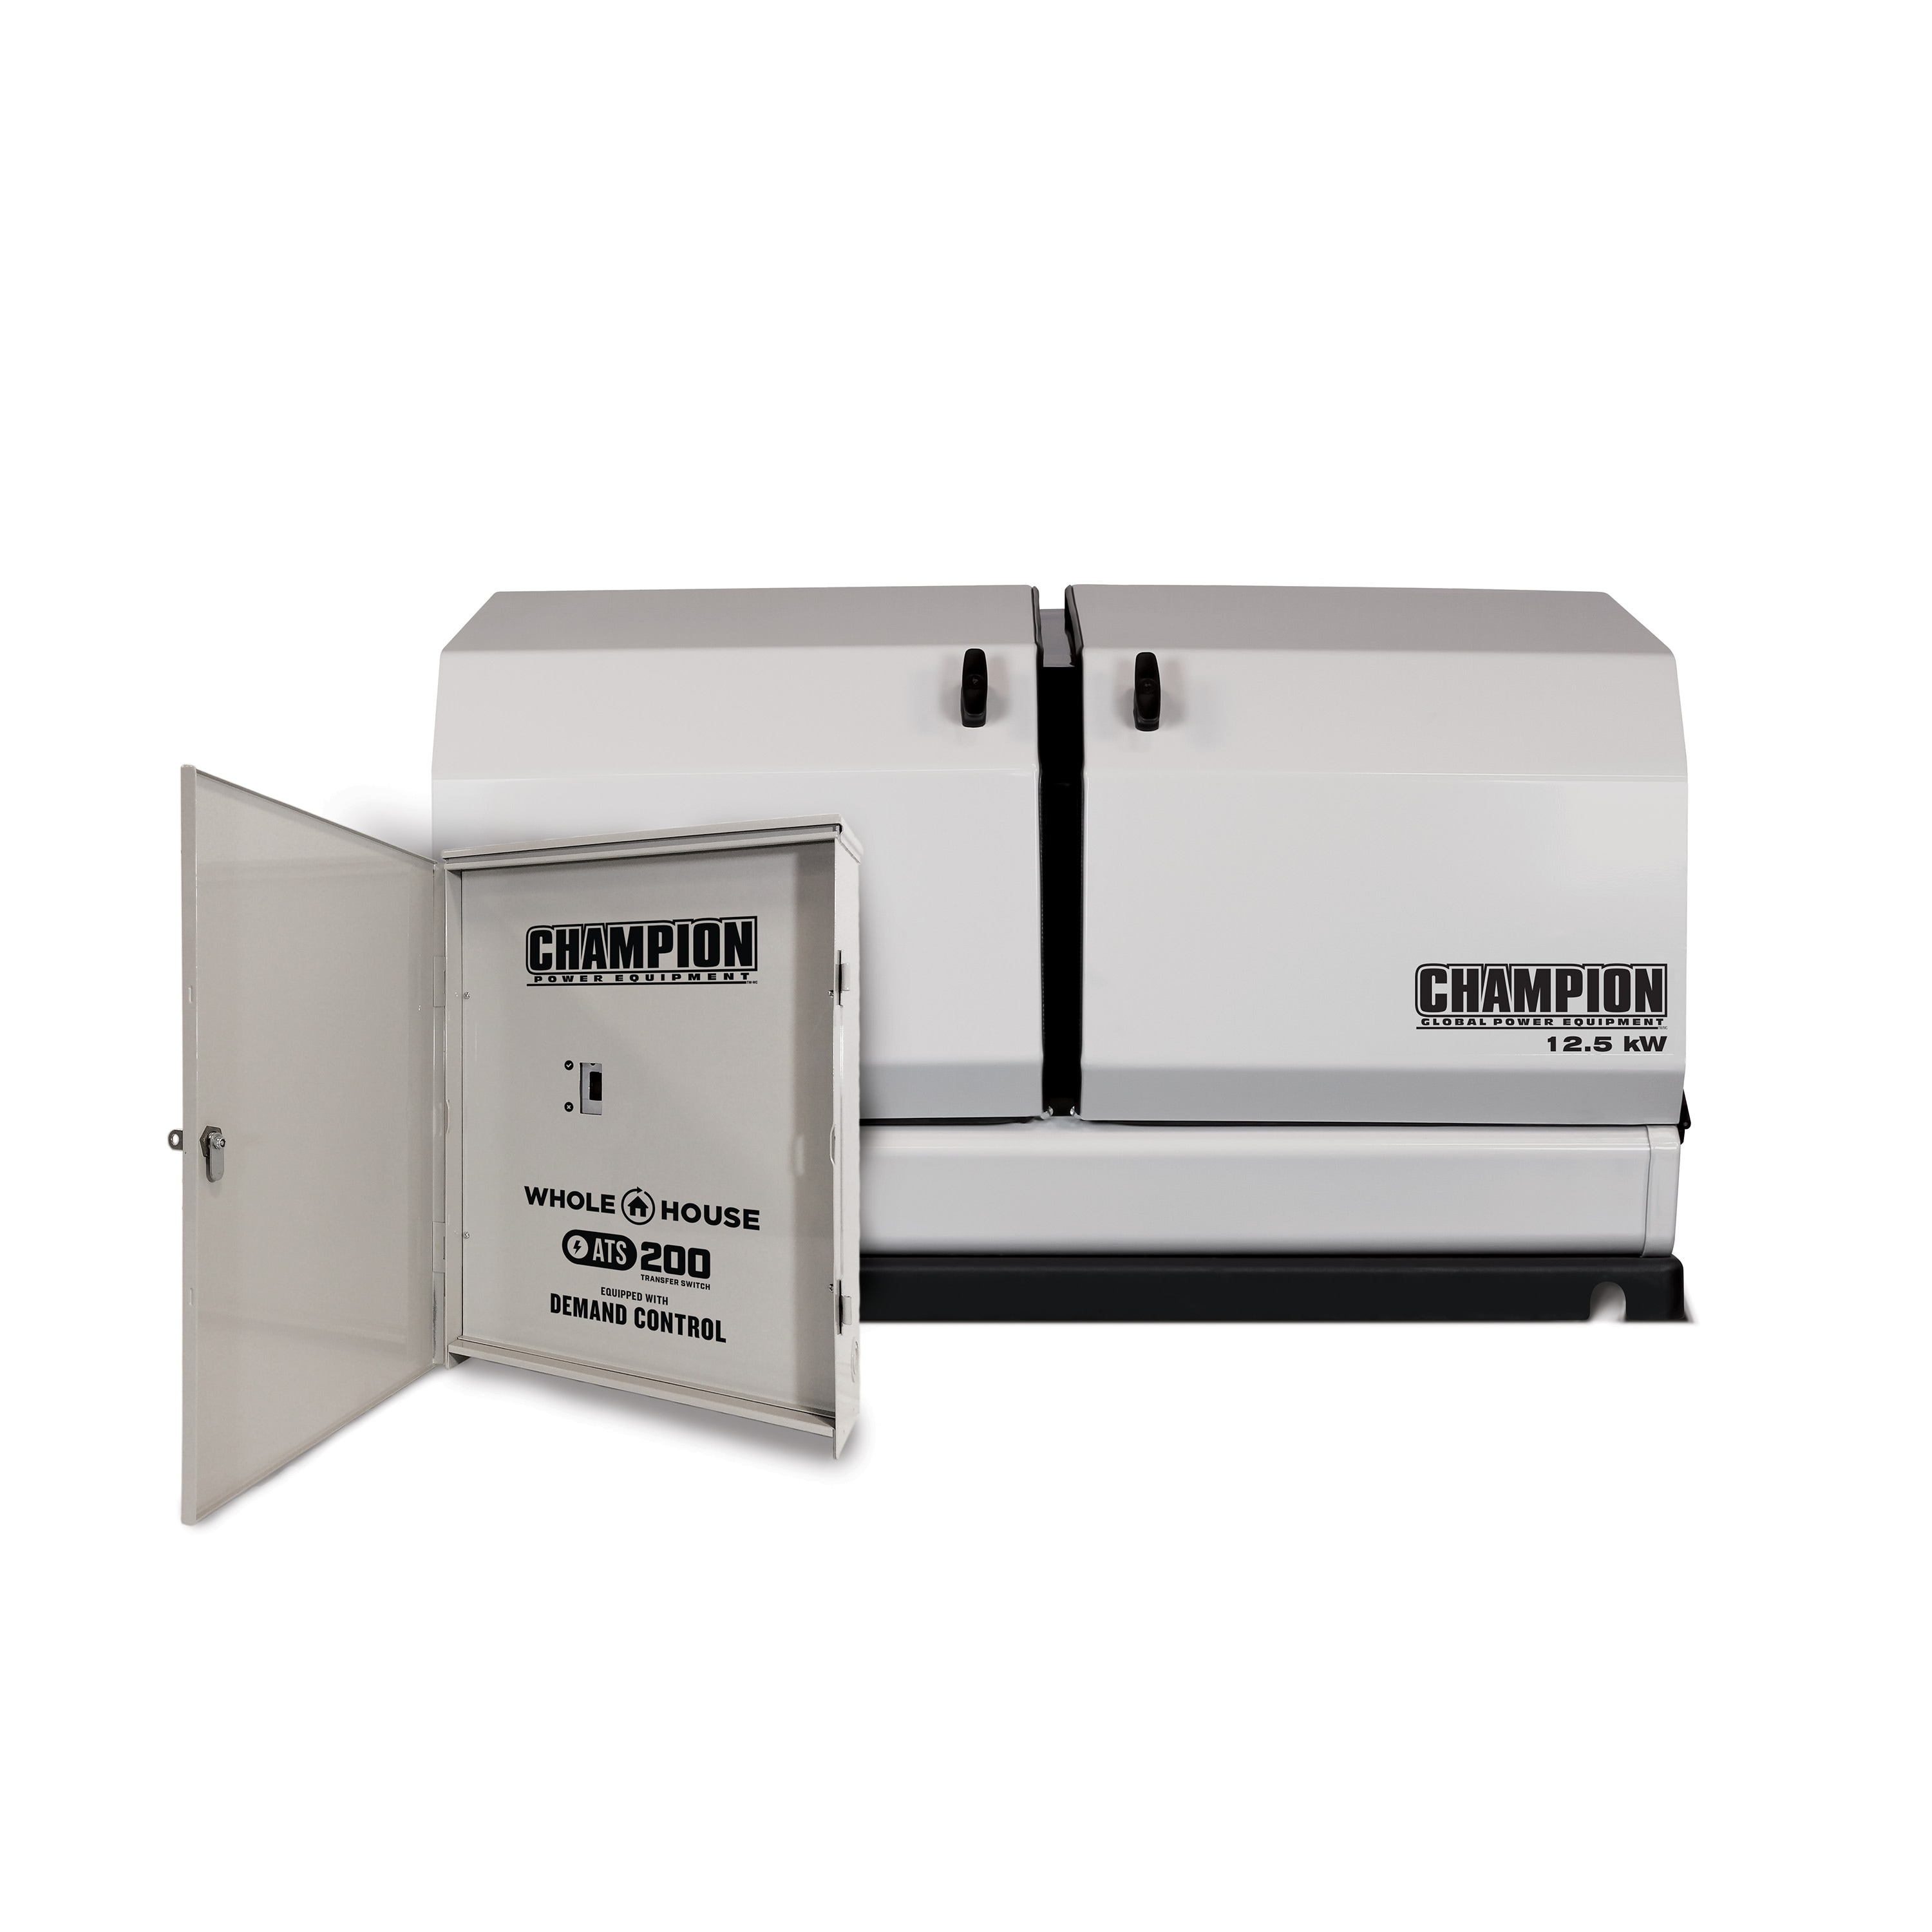 Champion 12 5 kW Home Standby Generator with 200 Amp Whole House